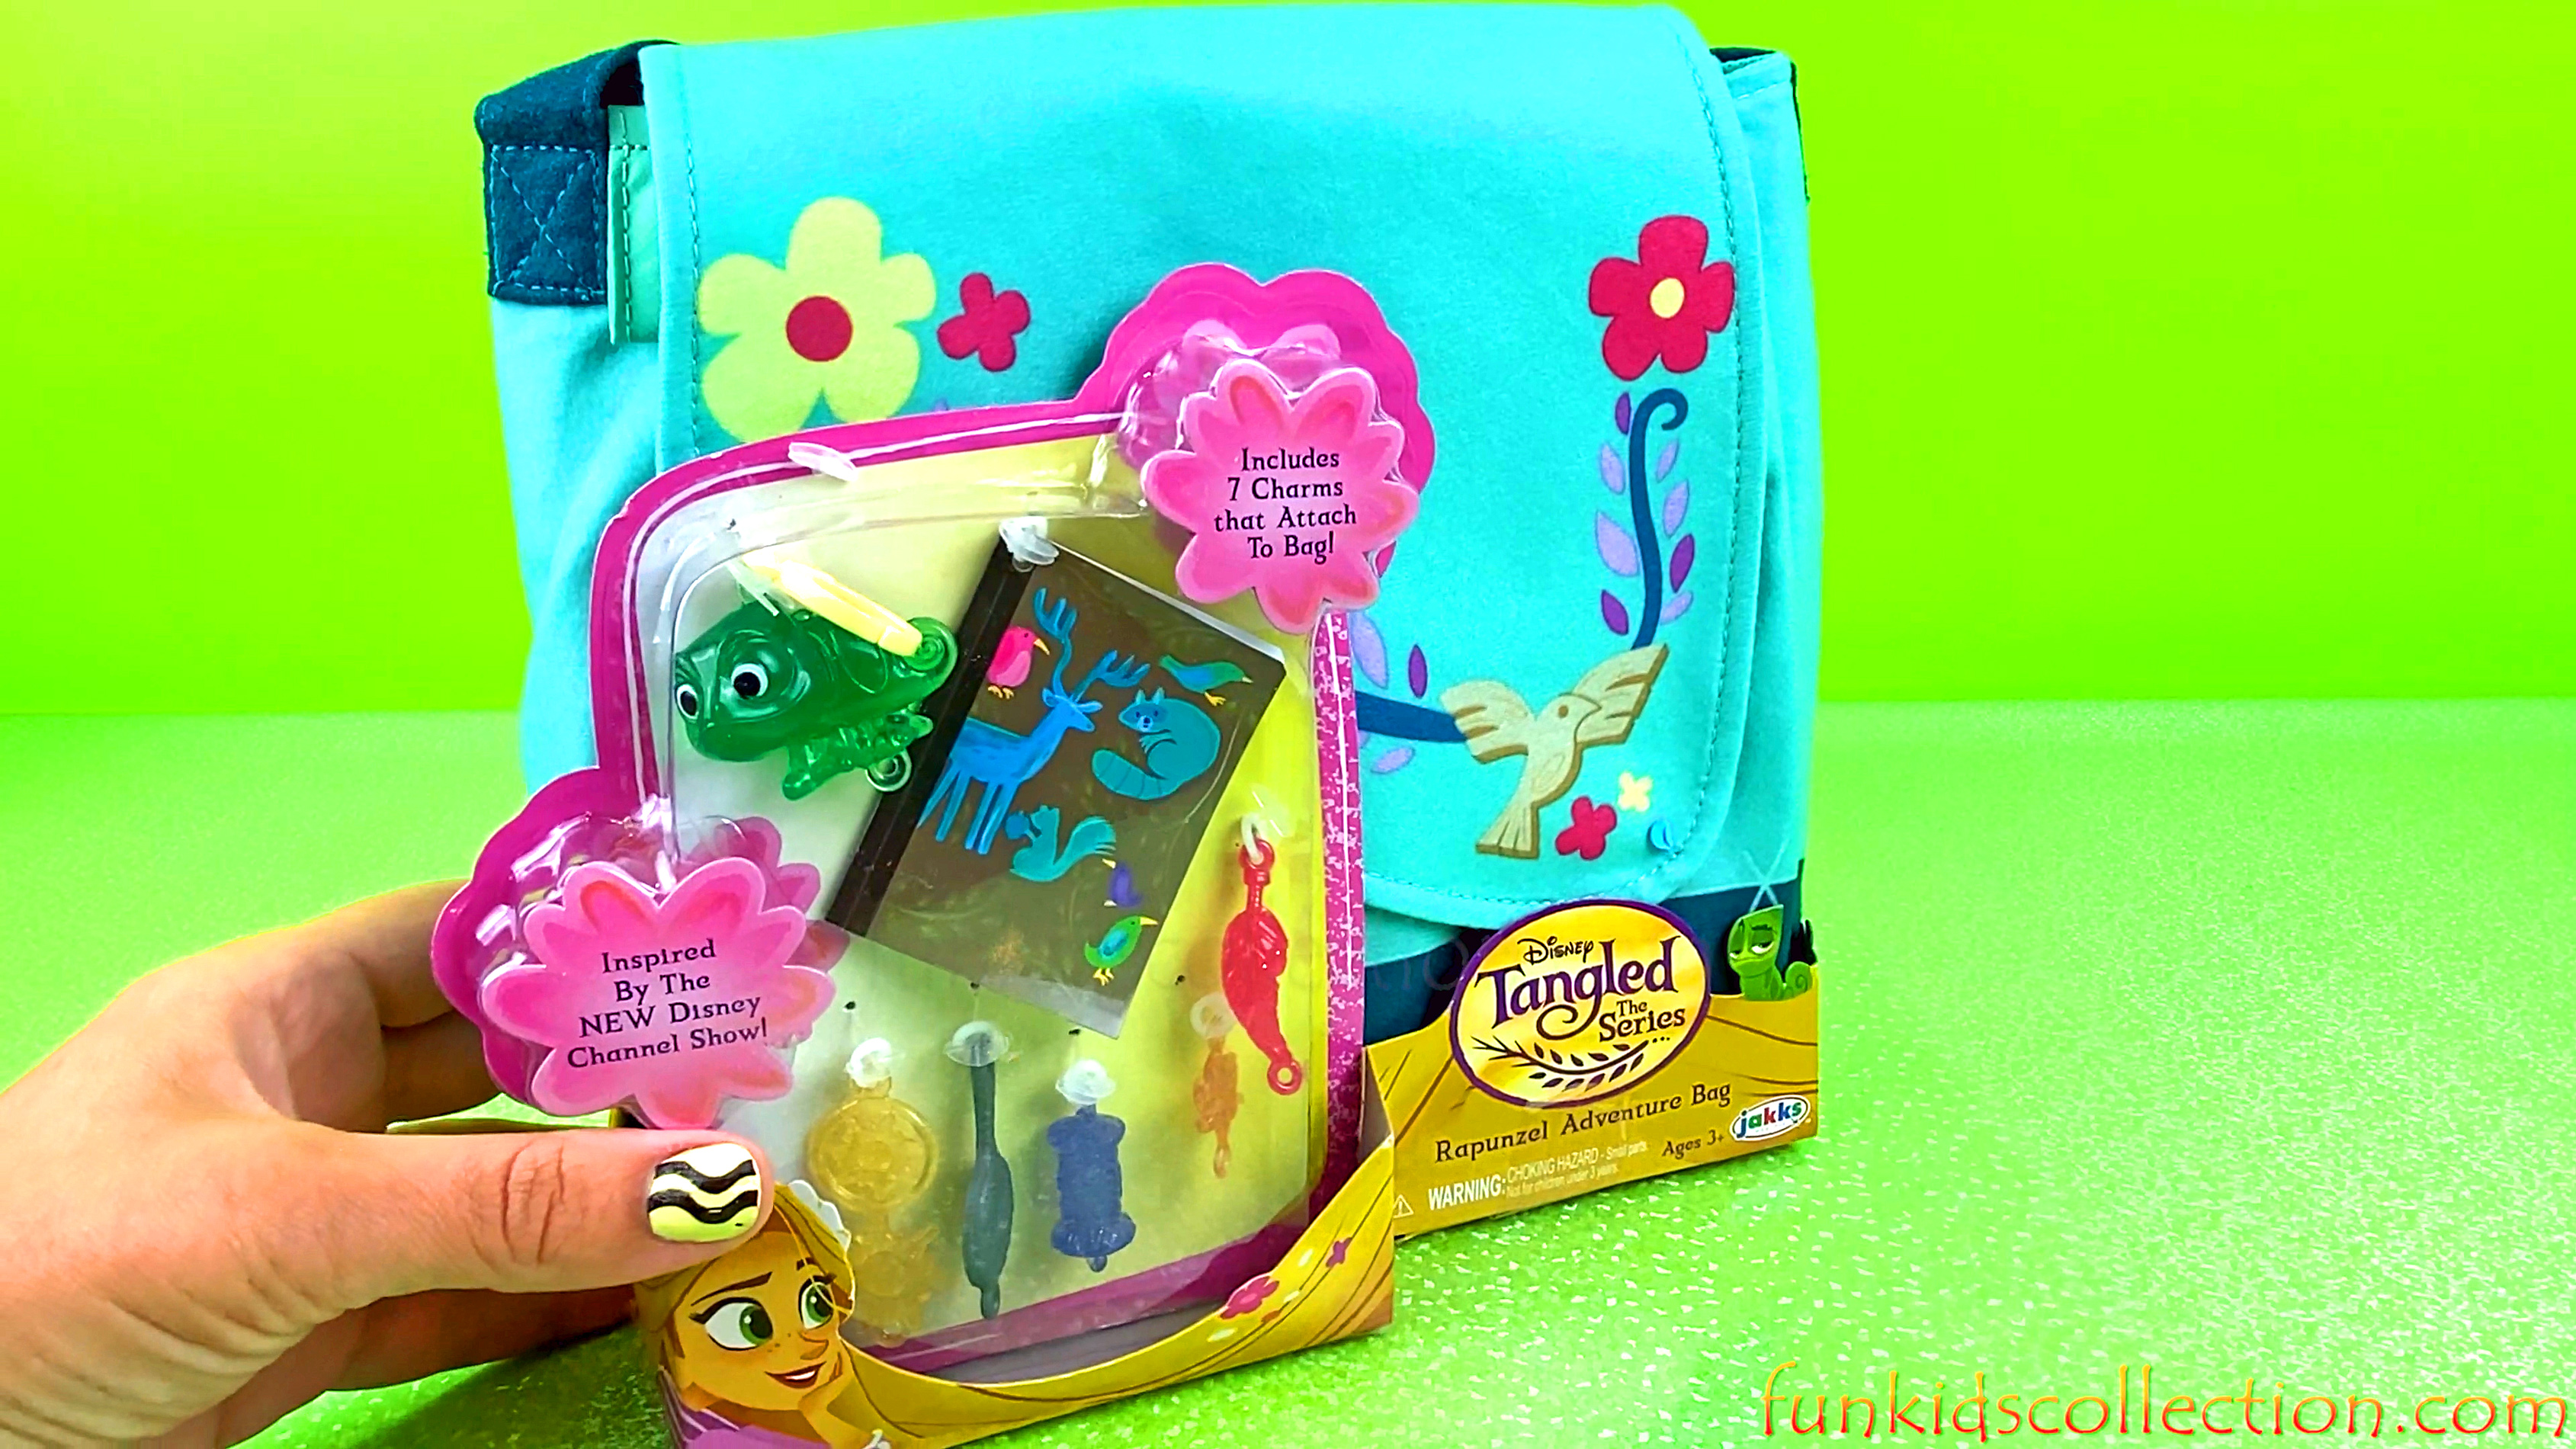 Disney Tangled The Series | Rapunzel Adventure Bag includes 7 Charms that Attach to Bag